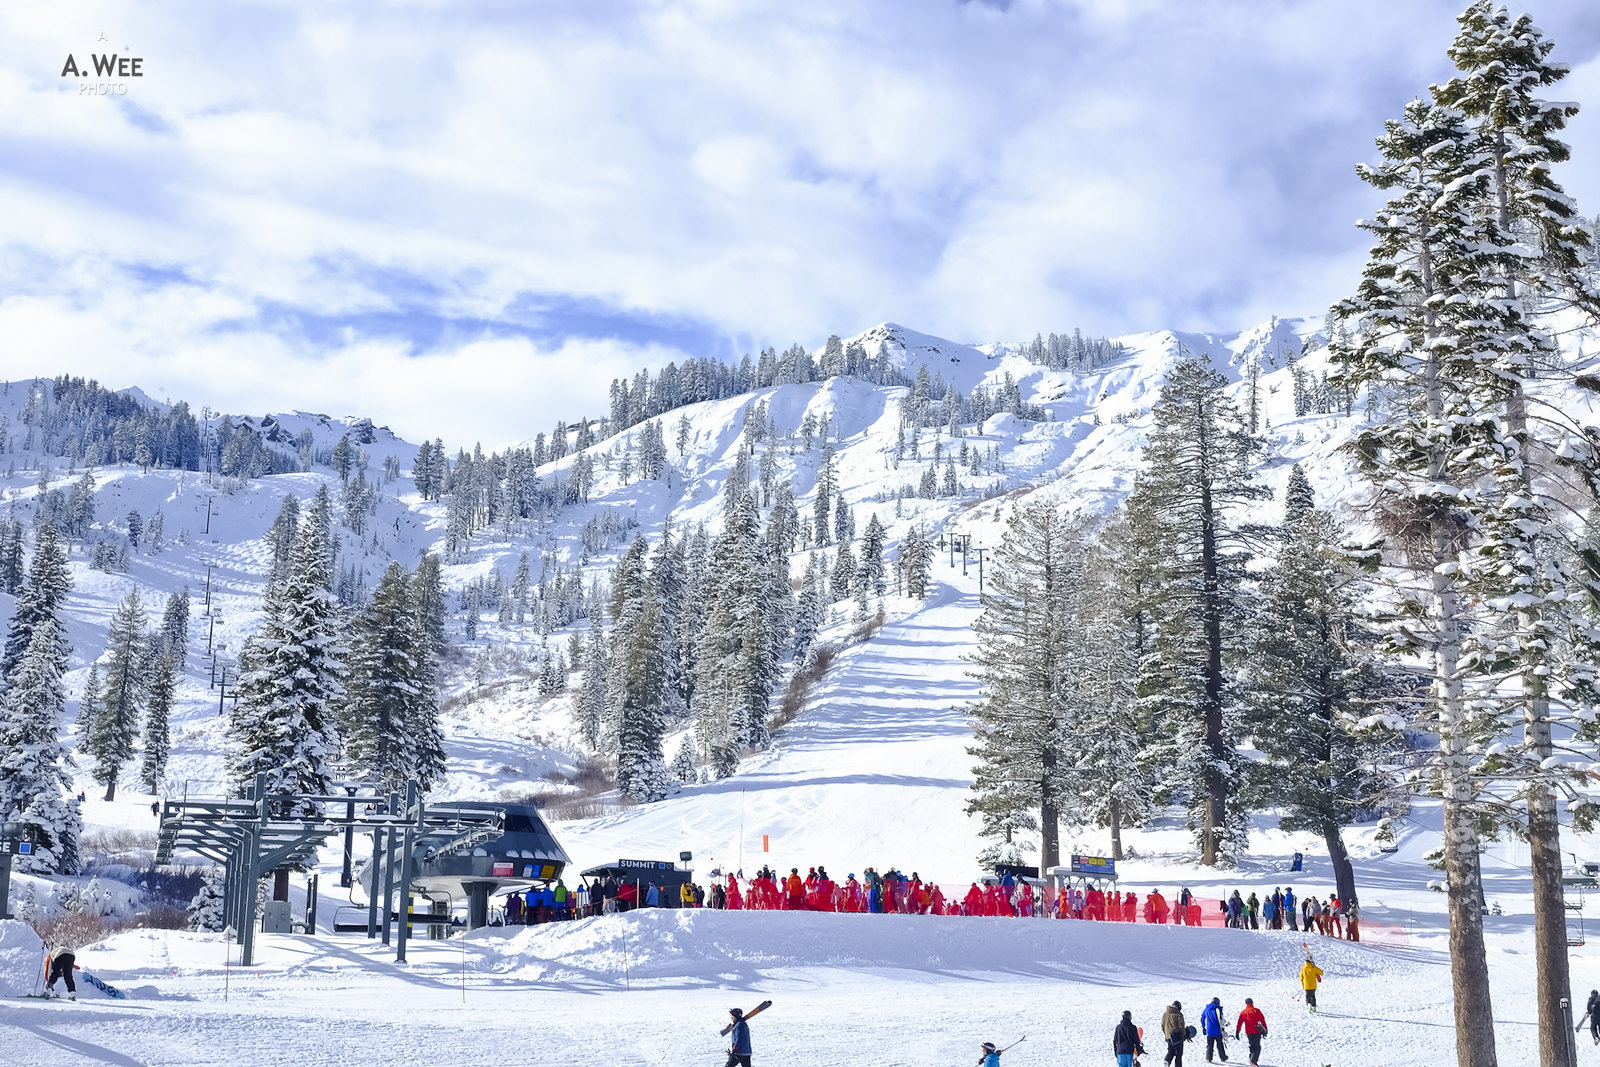 Good morning from Alpine Meadows